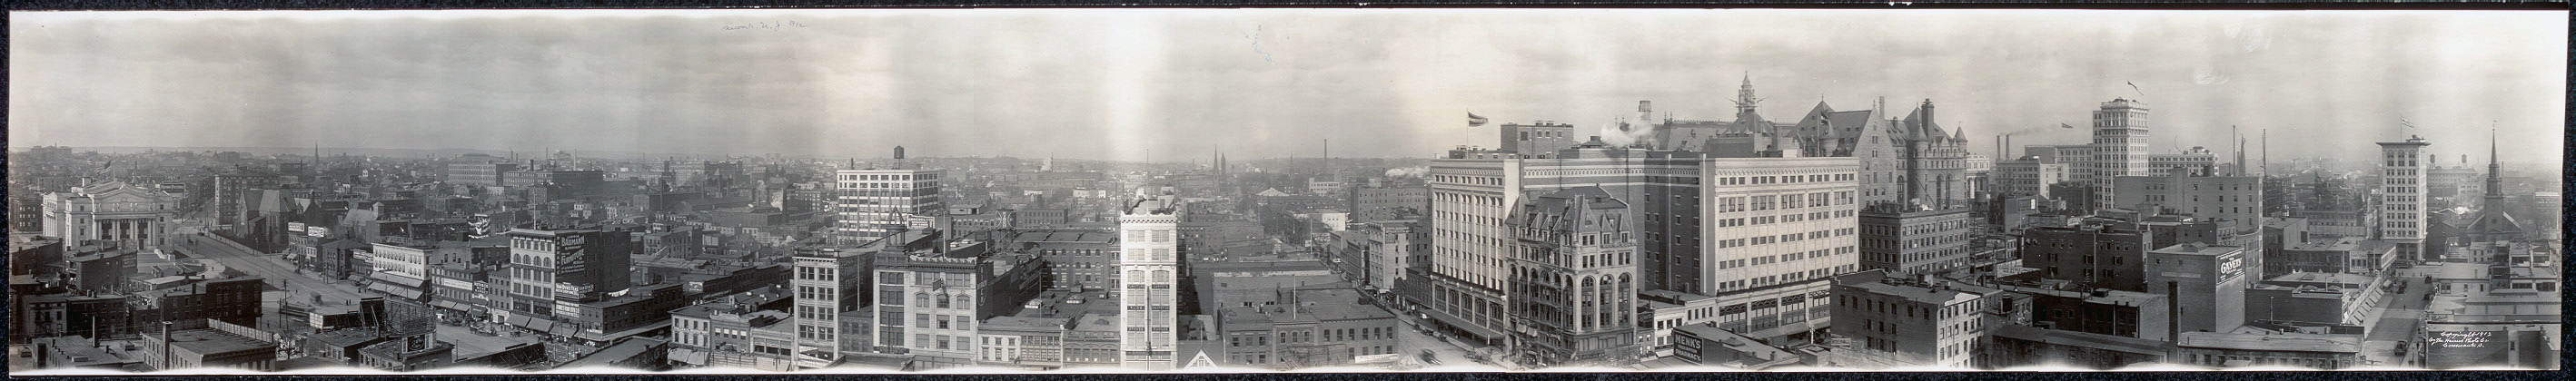 Black and white photo of a panoramic view of the city of Newark, New Jersey in 1912.